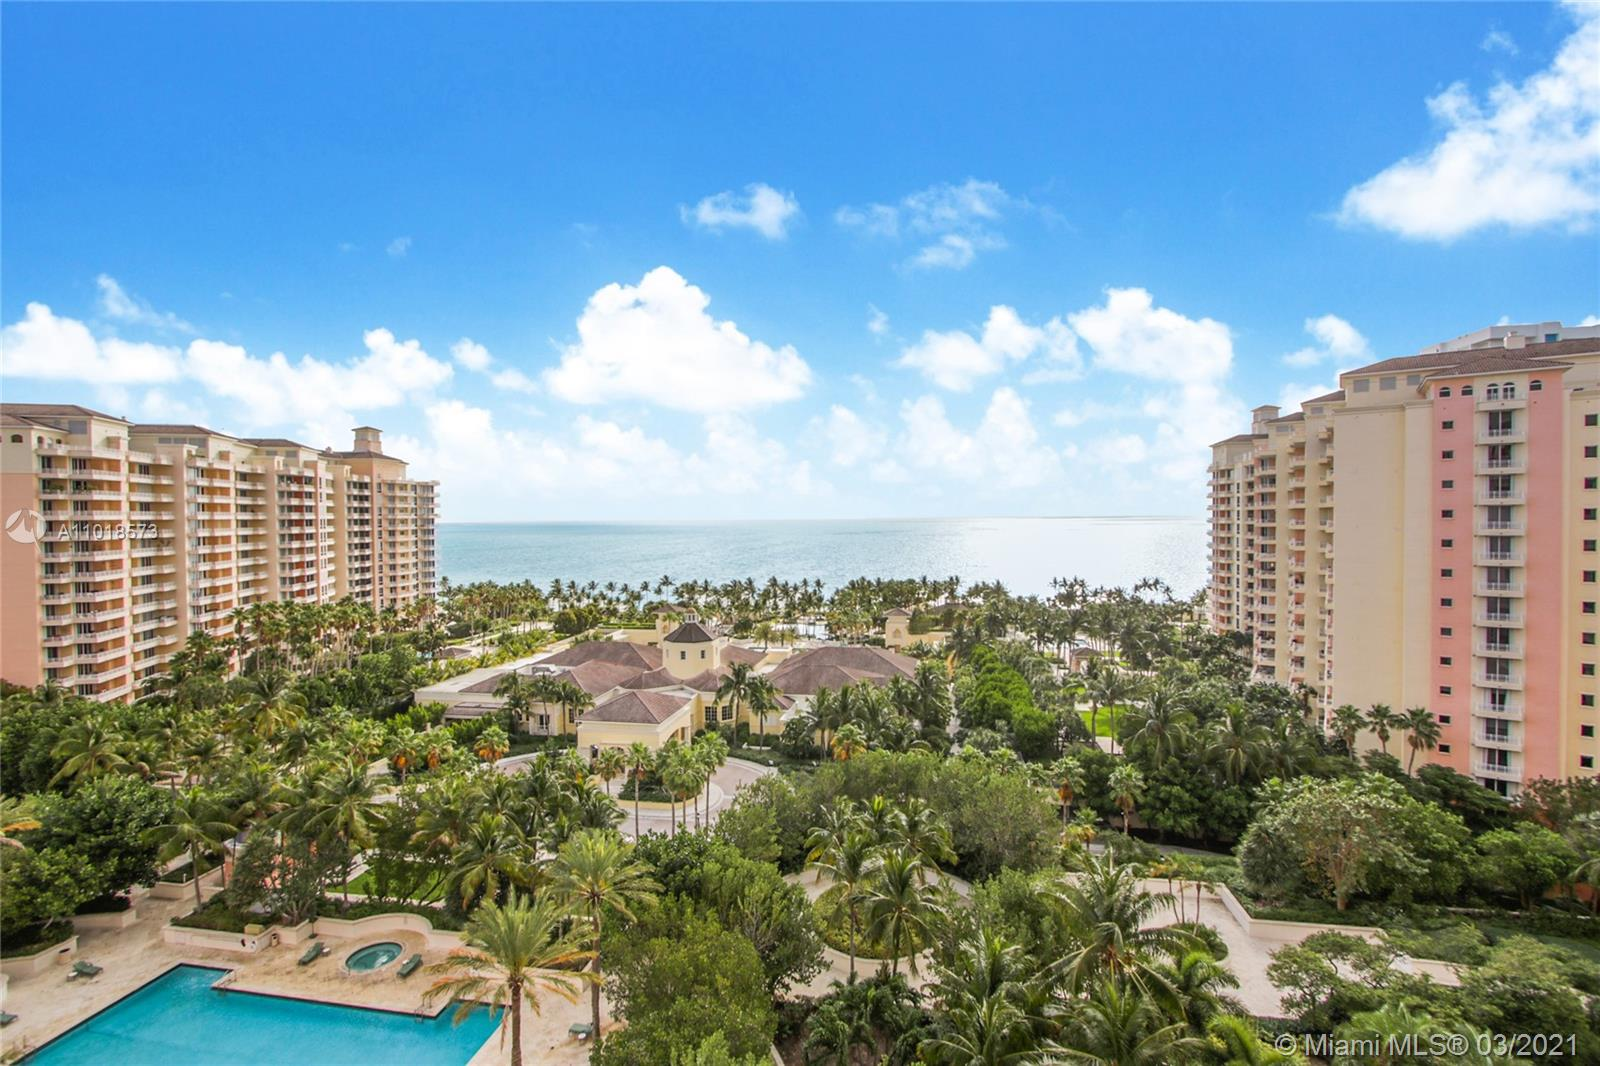 PRIME LOCATION!   High Floor Unit Offers Spectacular Views To The OCEAN, BAY, CITY LIGHTS, ISLAND, SUNRISES & SUNSETS!    Spacious 3 Bedroom + Den/Office Floor Plan!   Two Large Terraces!   Bright, Sunny Location!    Seller Will Not Accept Any Mortgage or Appraisal Contingencies!